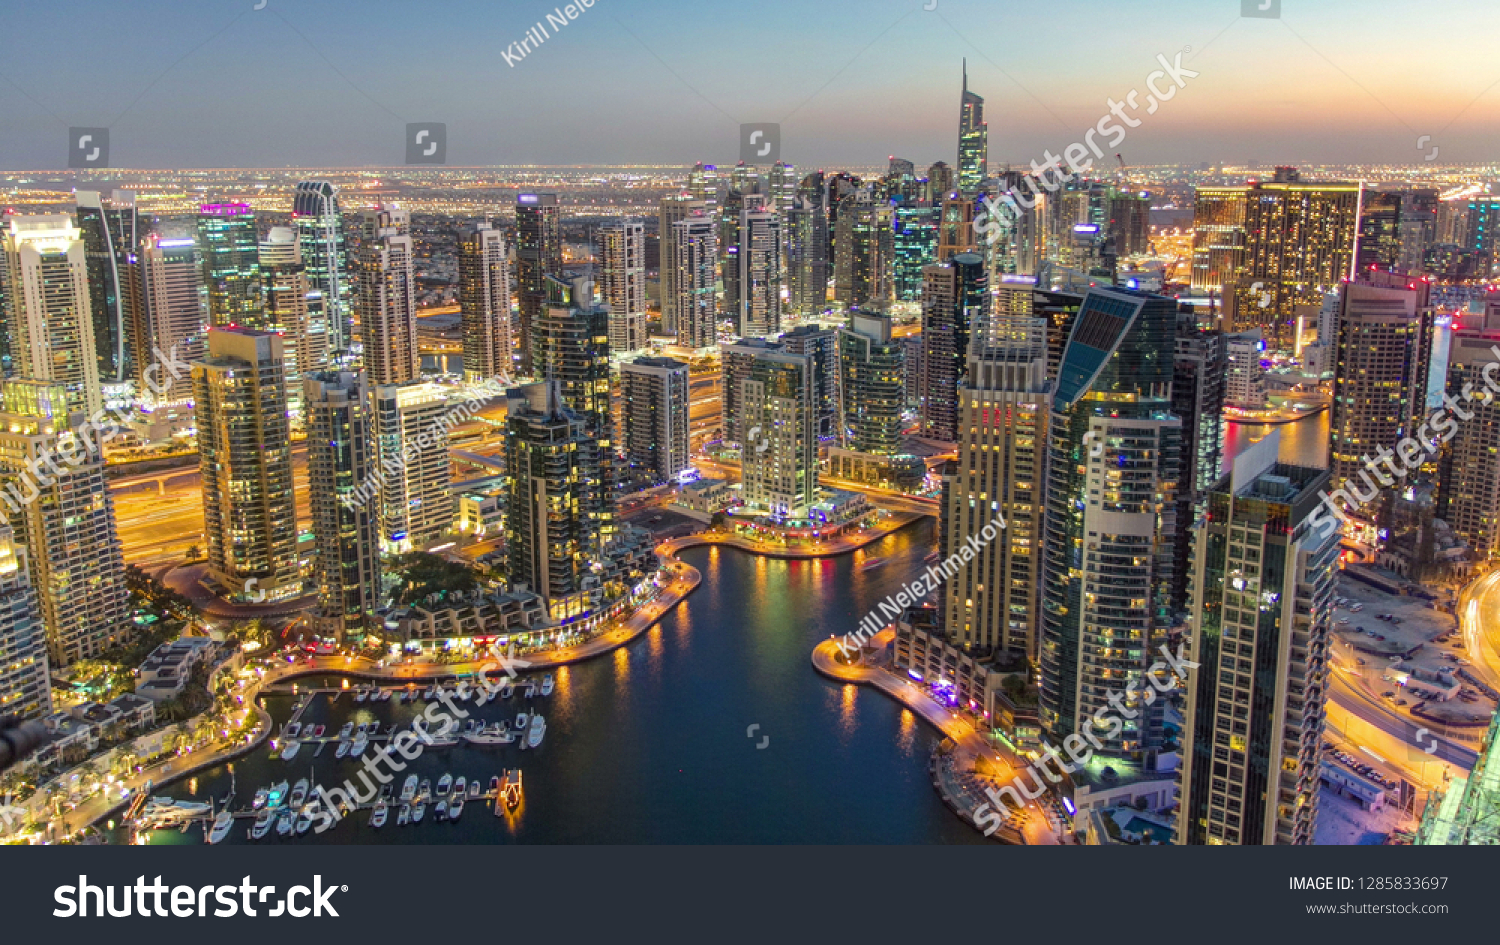 Dubai Marina with yachts in harbor and modern towers from top of skyscraper transition from day to night , Glittering lights and tallest skyscrapers during a clear evening with Blue sky.  #1285833697